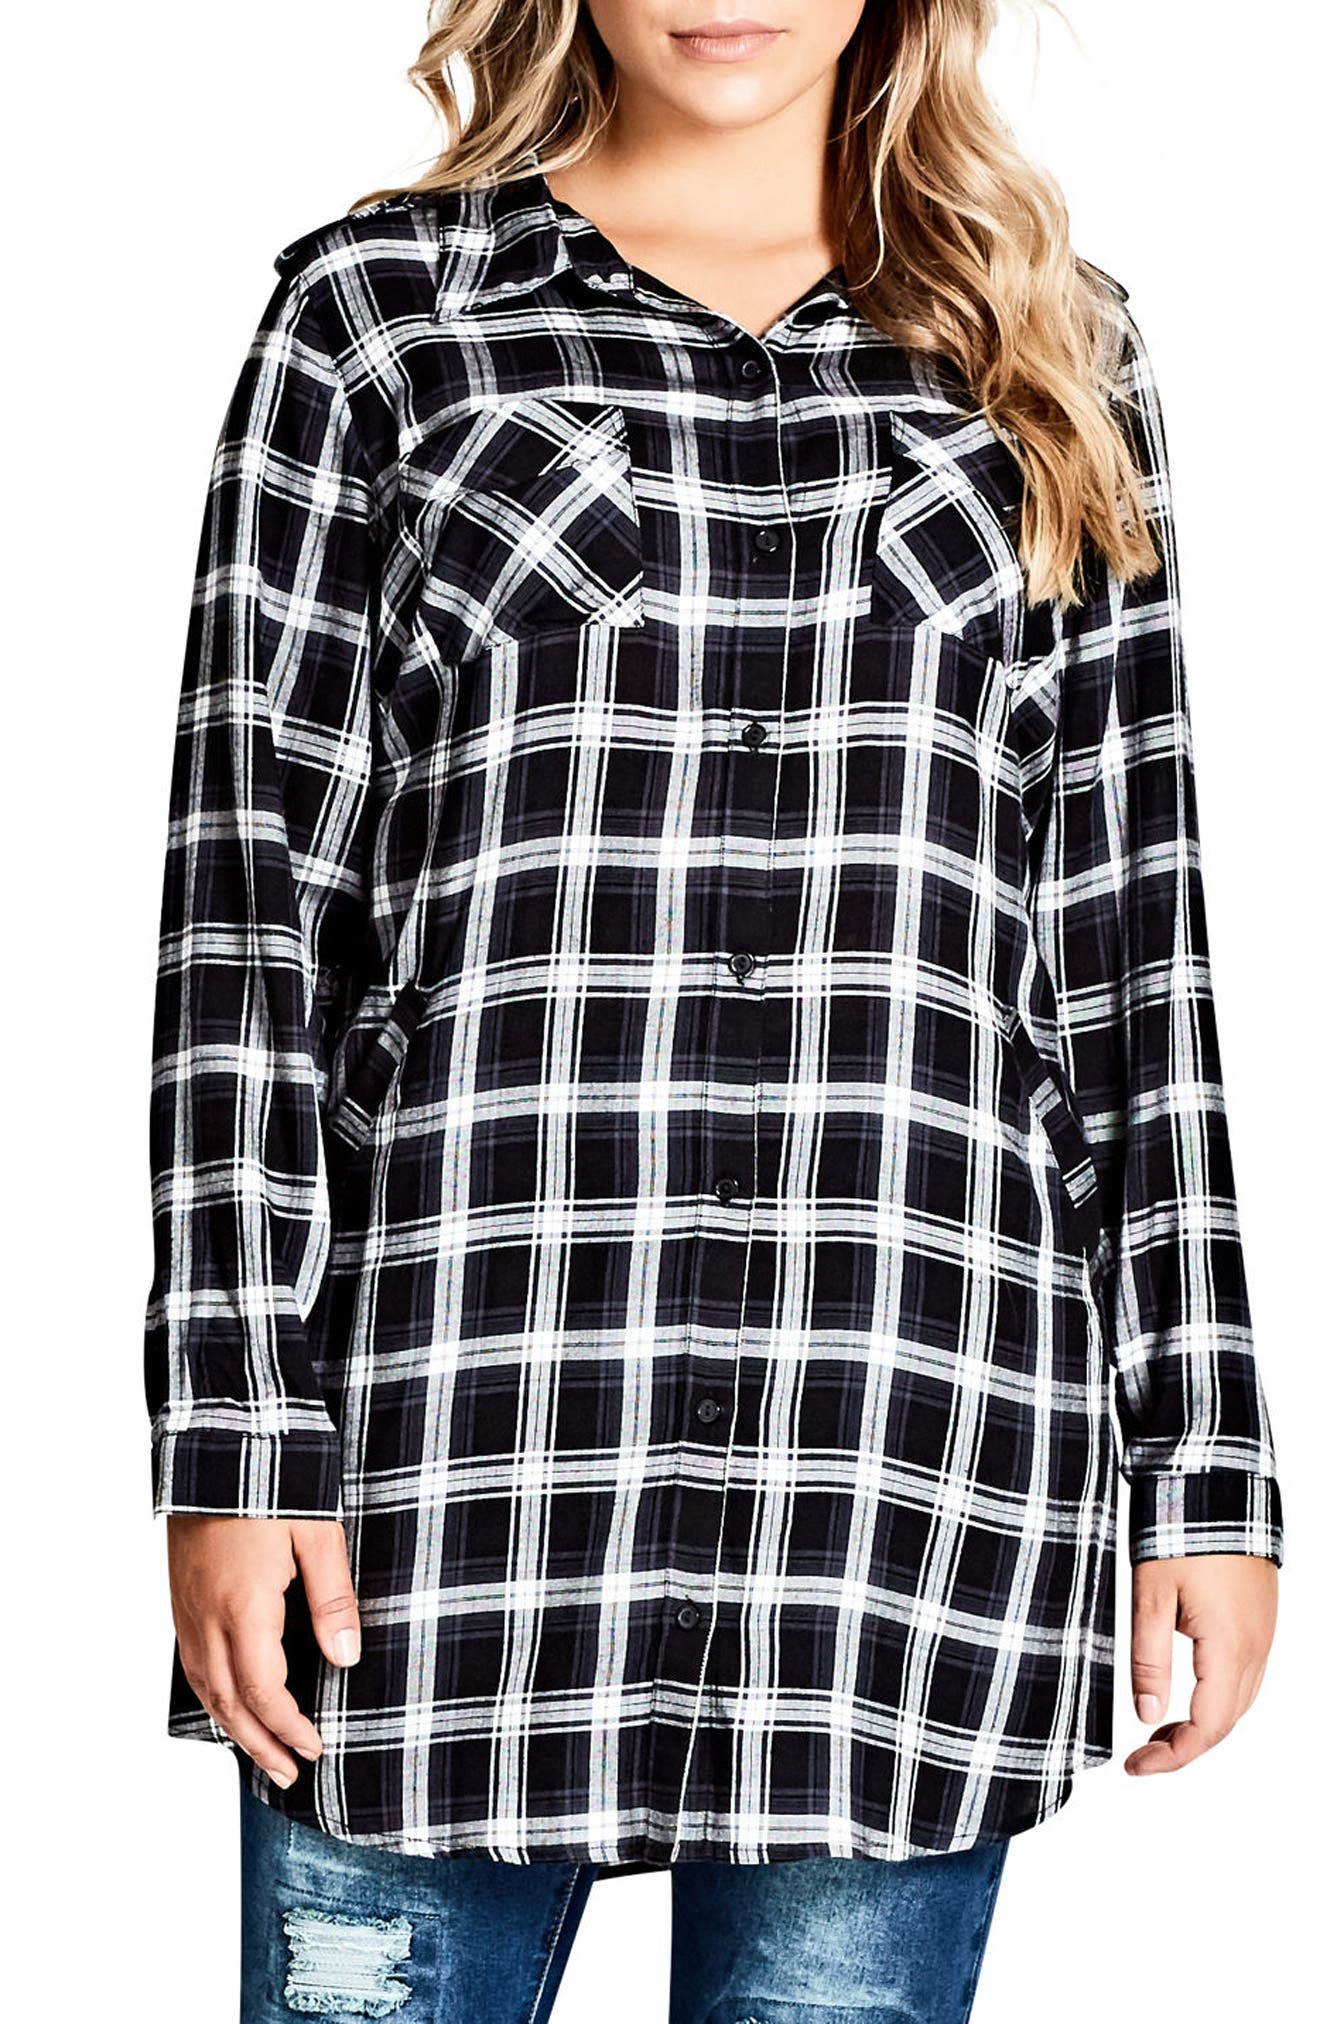 Alternate Image 1 Selected - City Chic Record Love Longline Shirt (Plus Size)